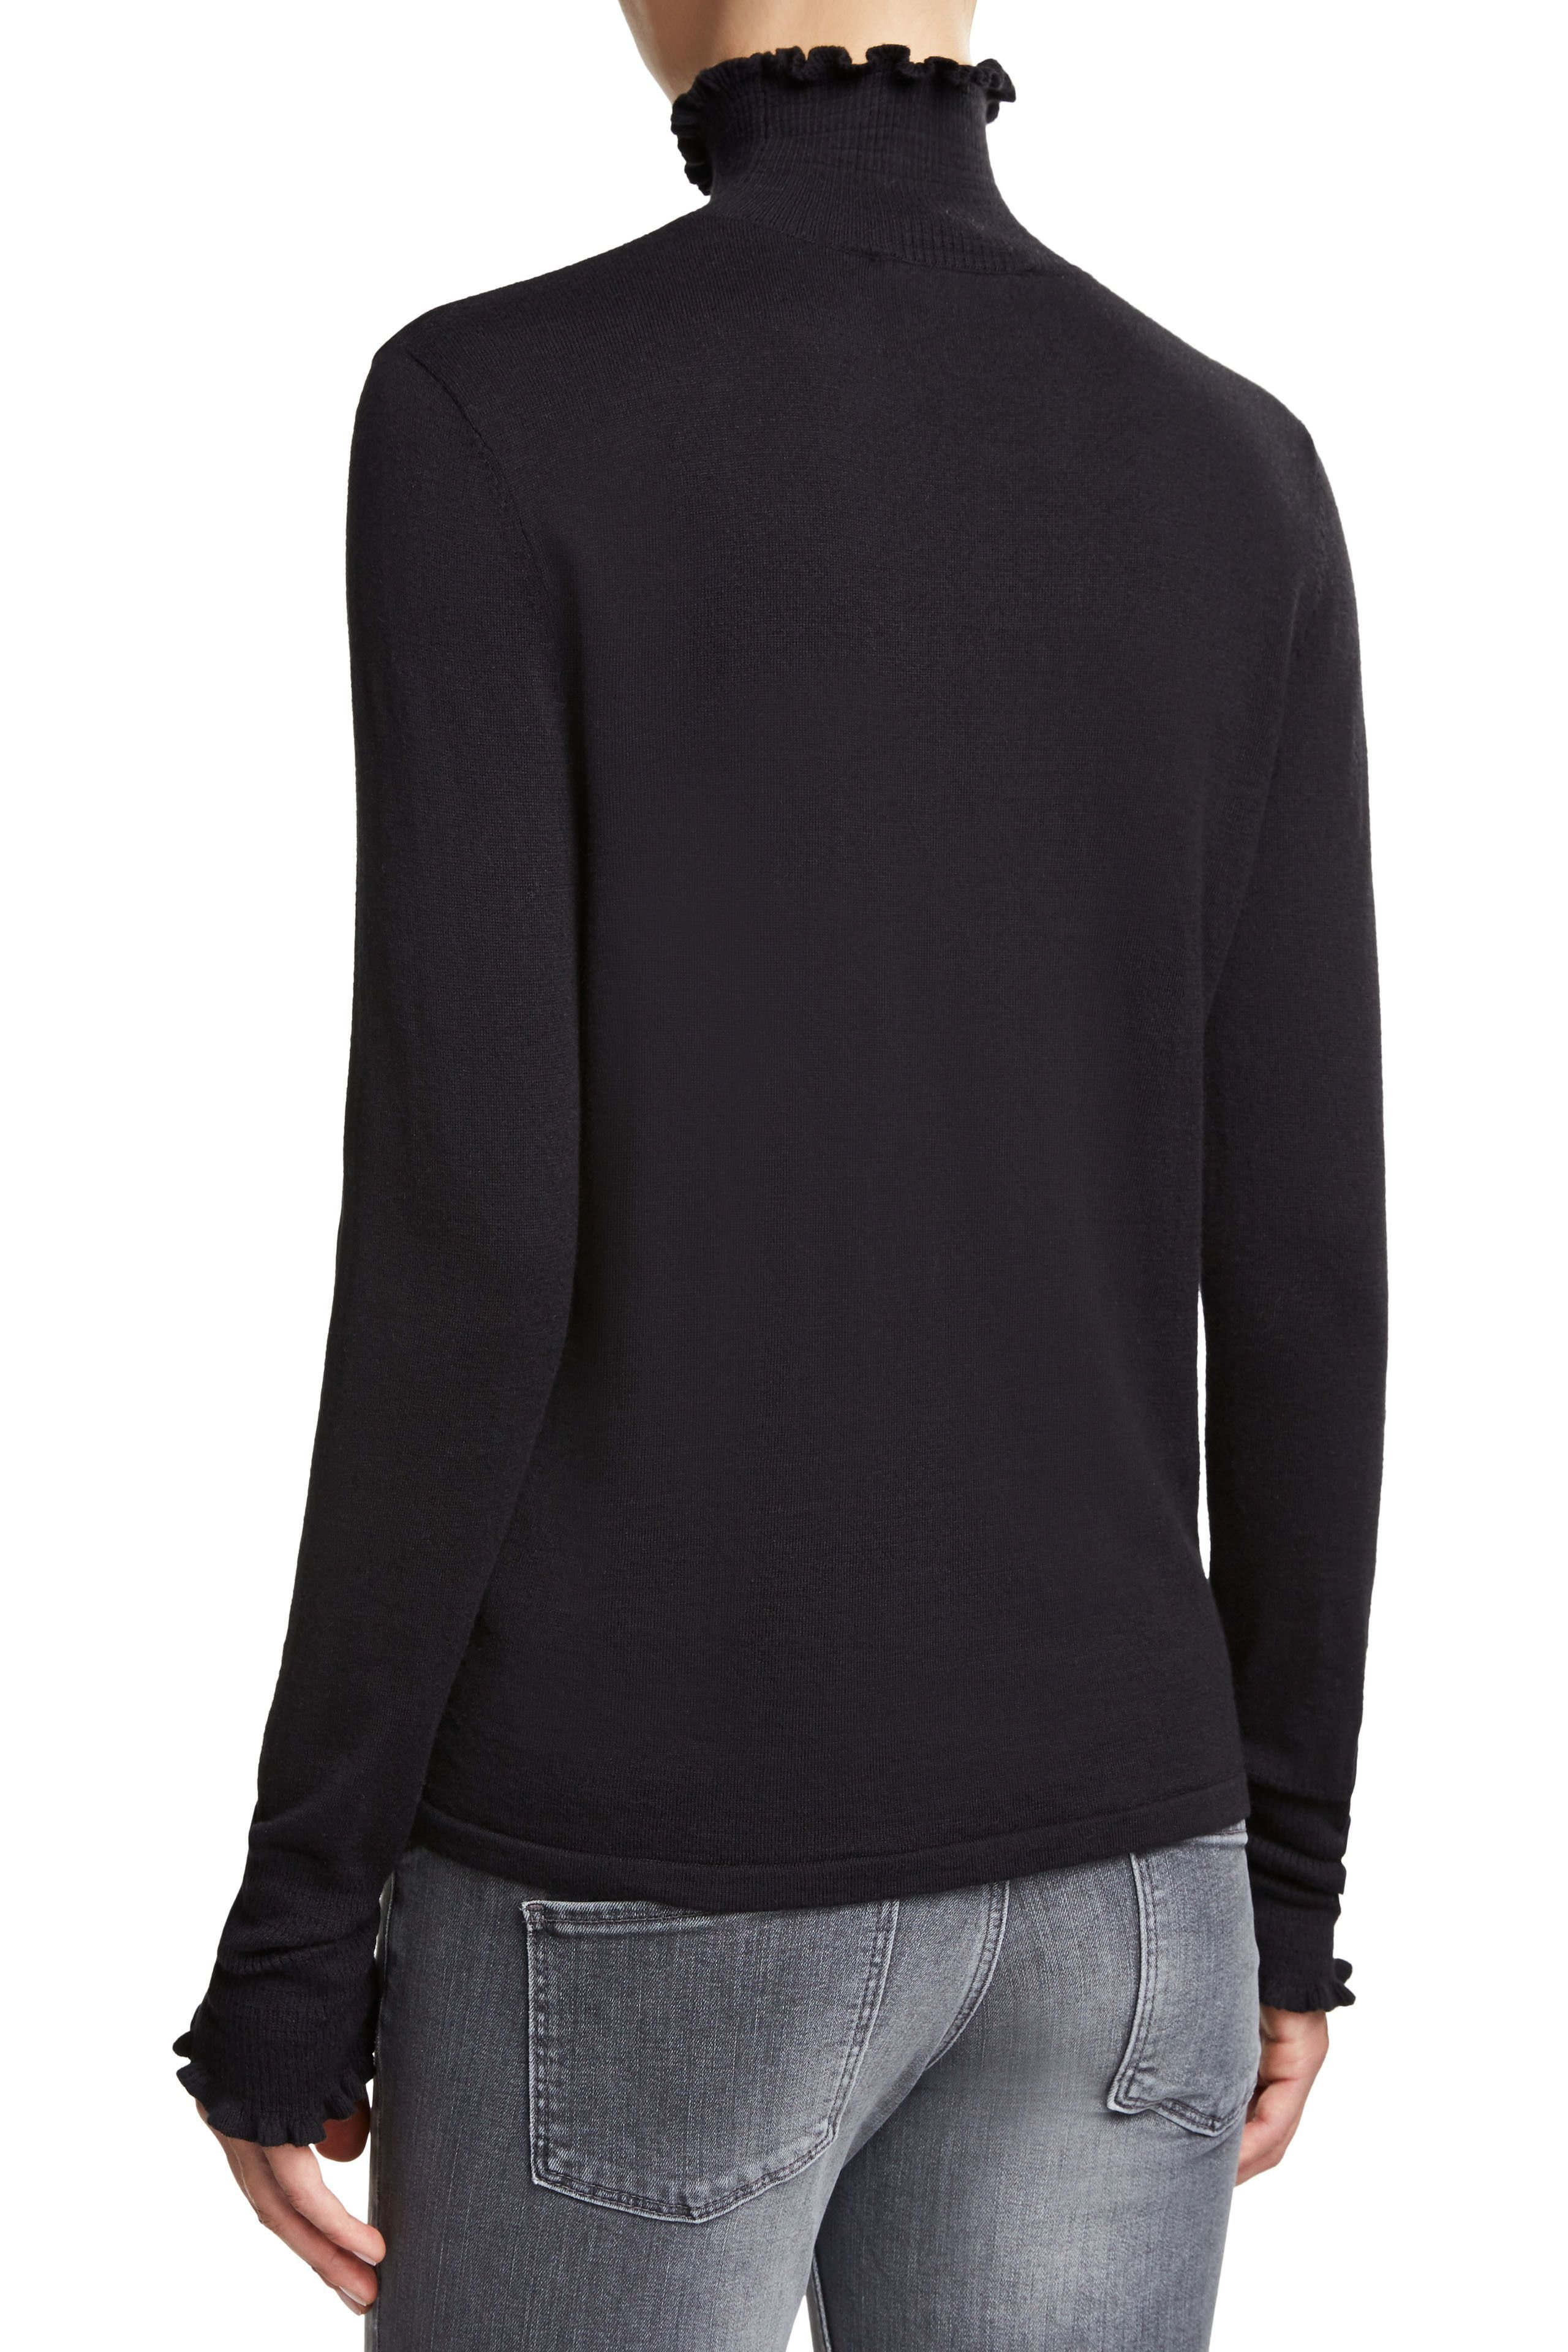 Poloneck with Frill Black